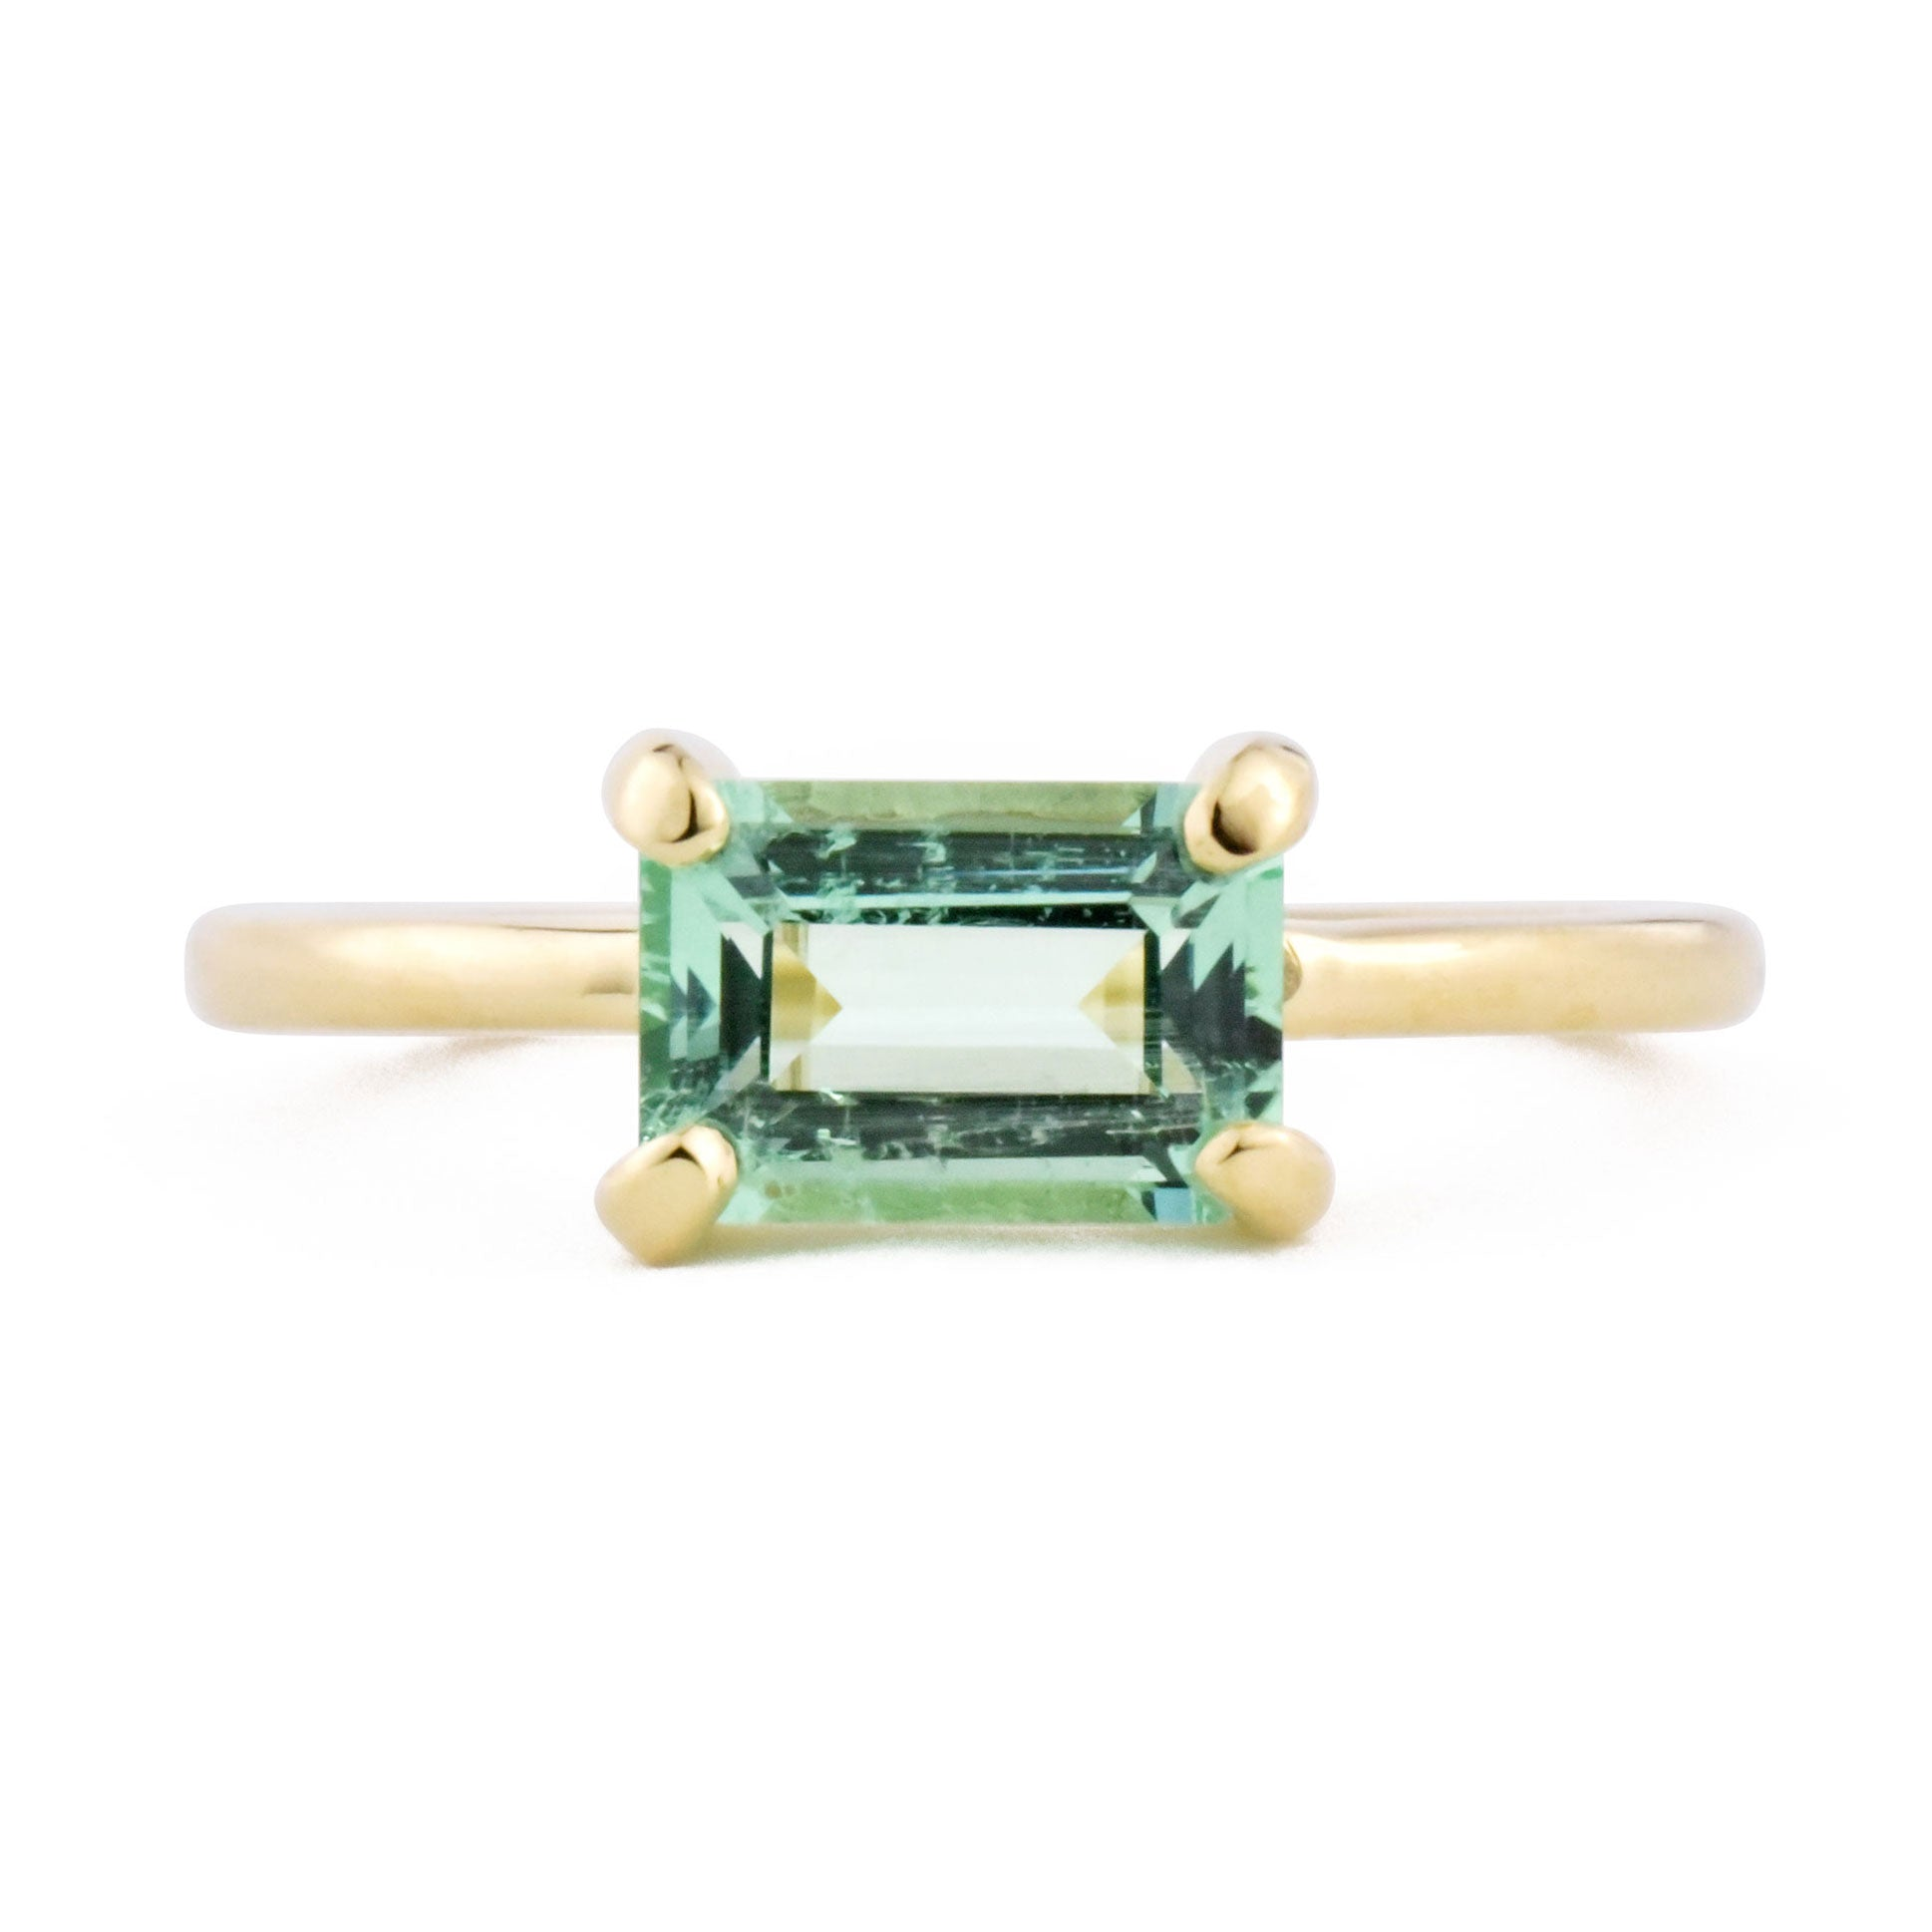 Eva Russian Emerald Ring from the front